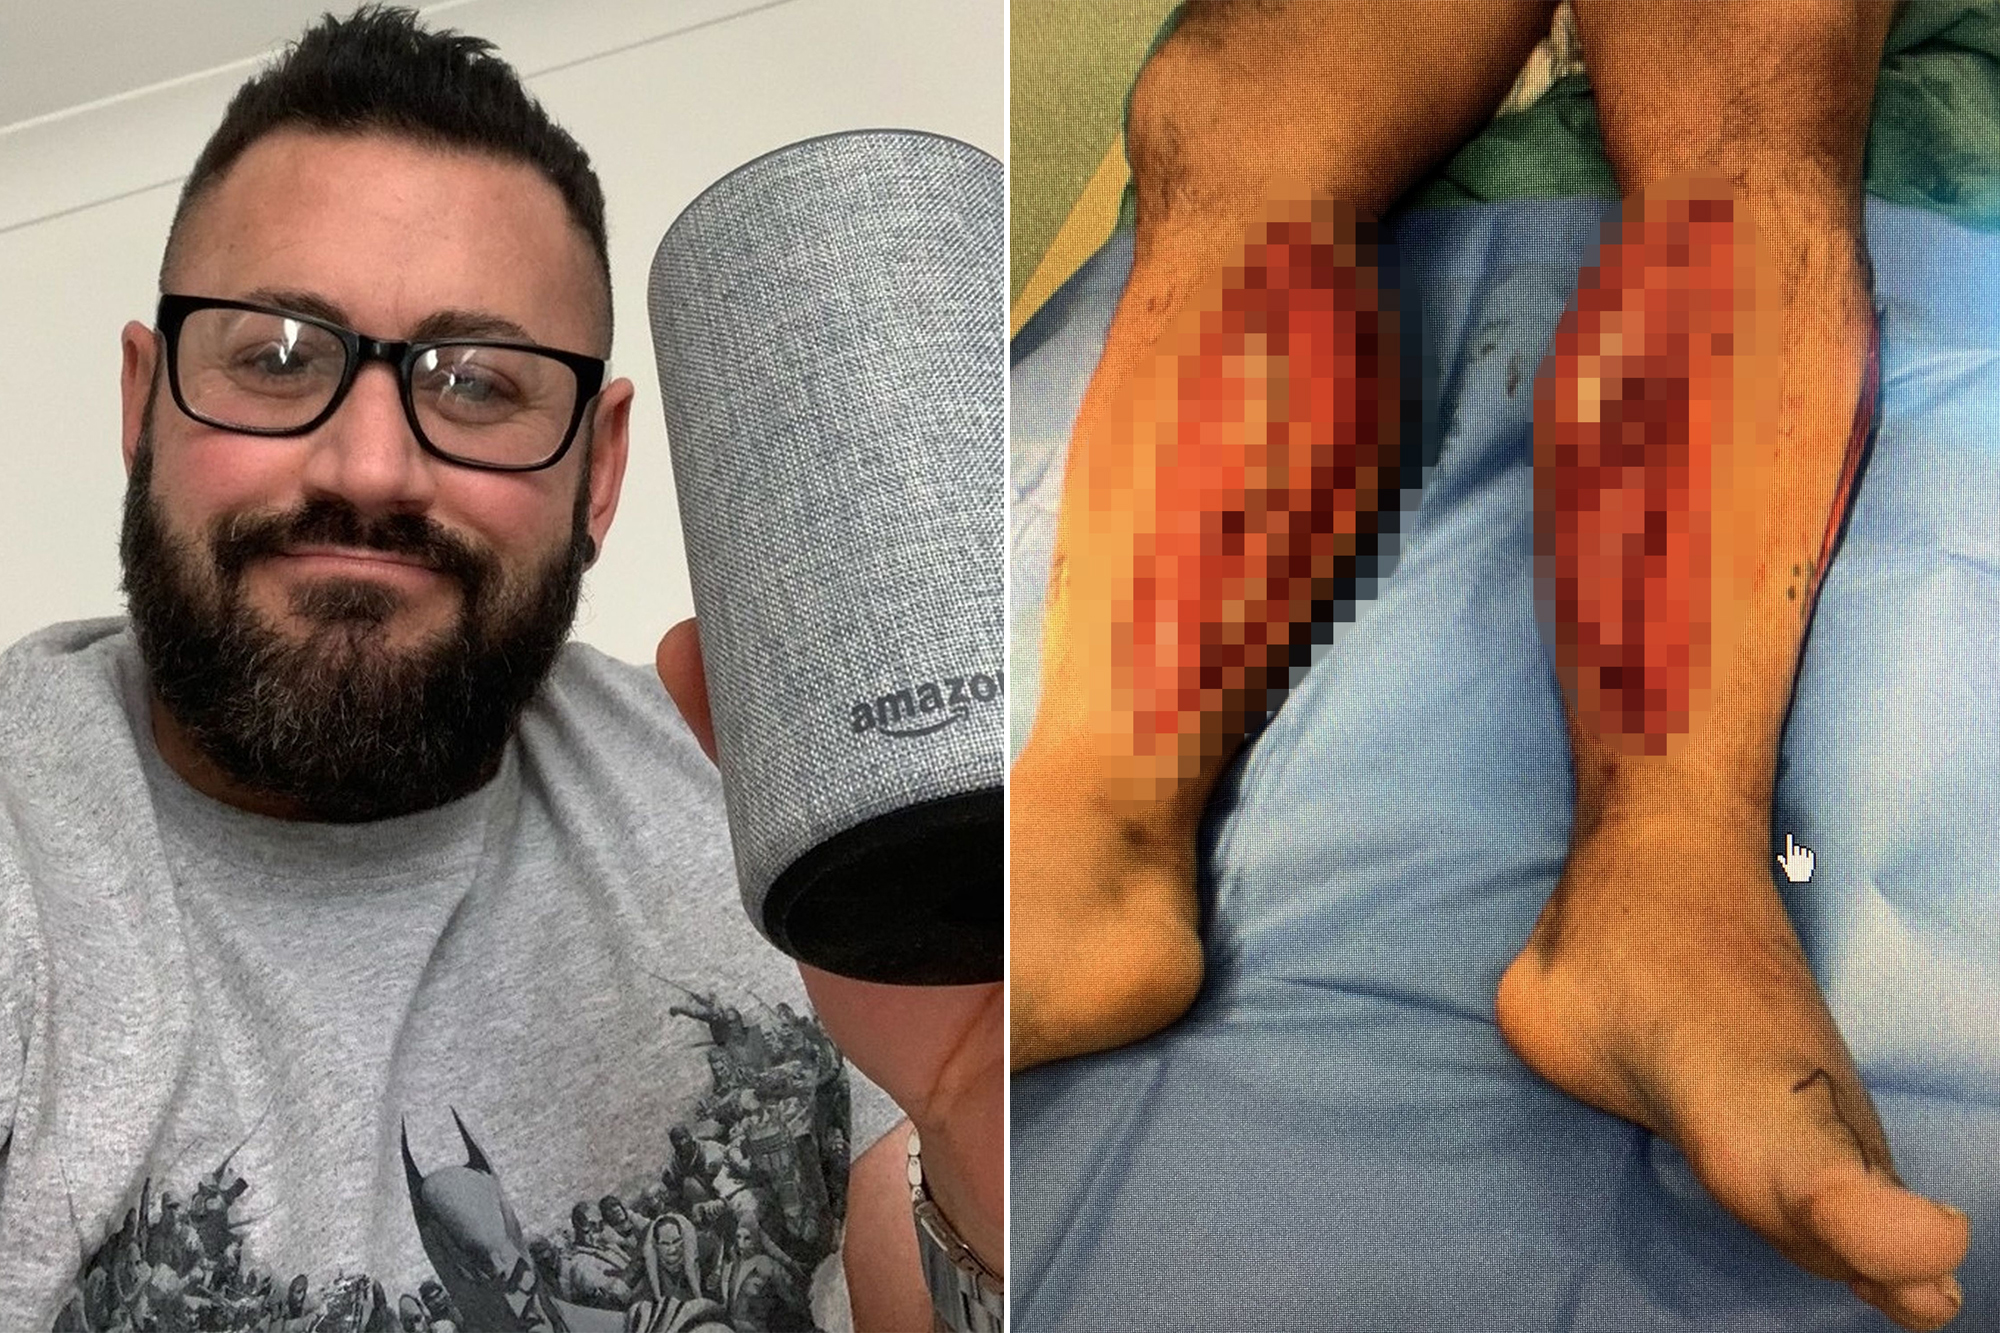 UK bodybuilder says Alexa saved his life after tumble down stairs